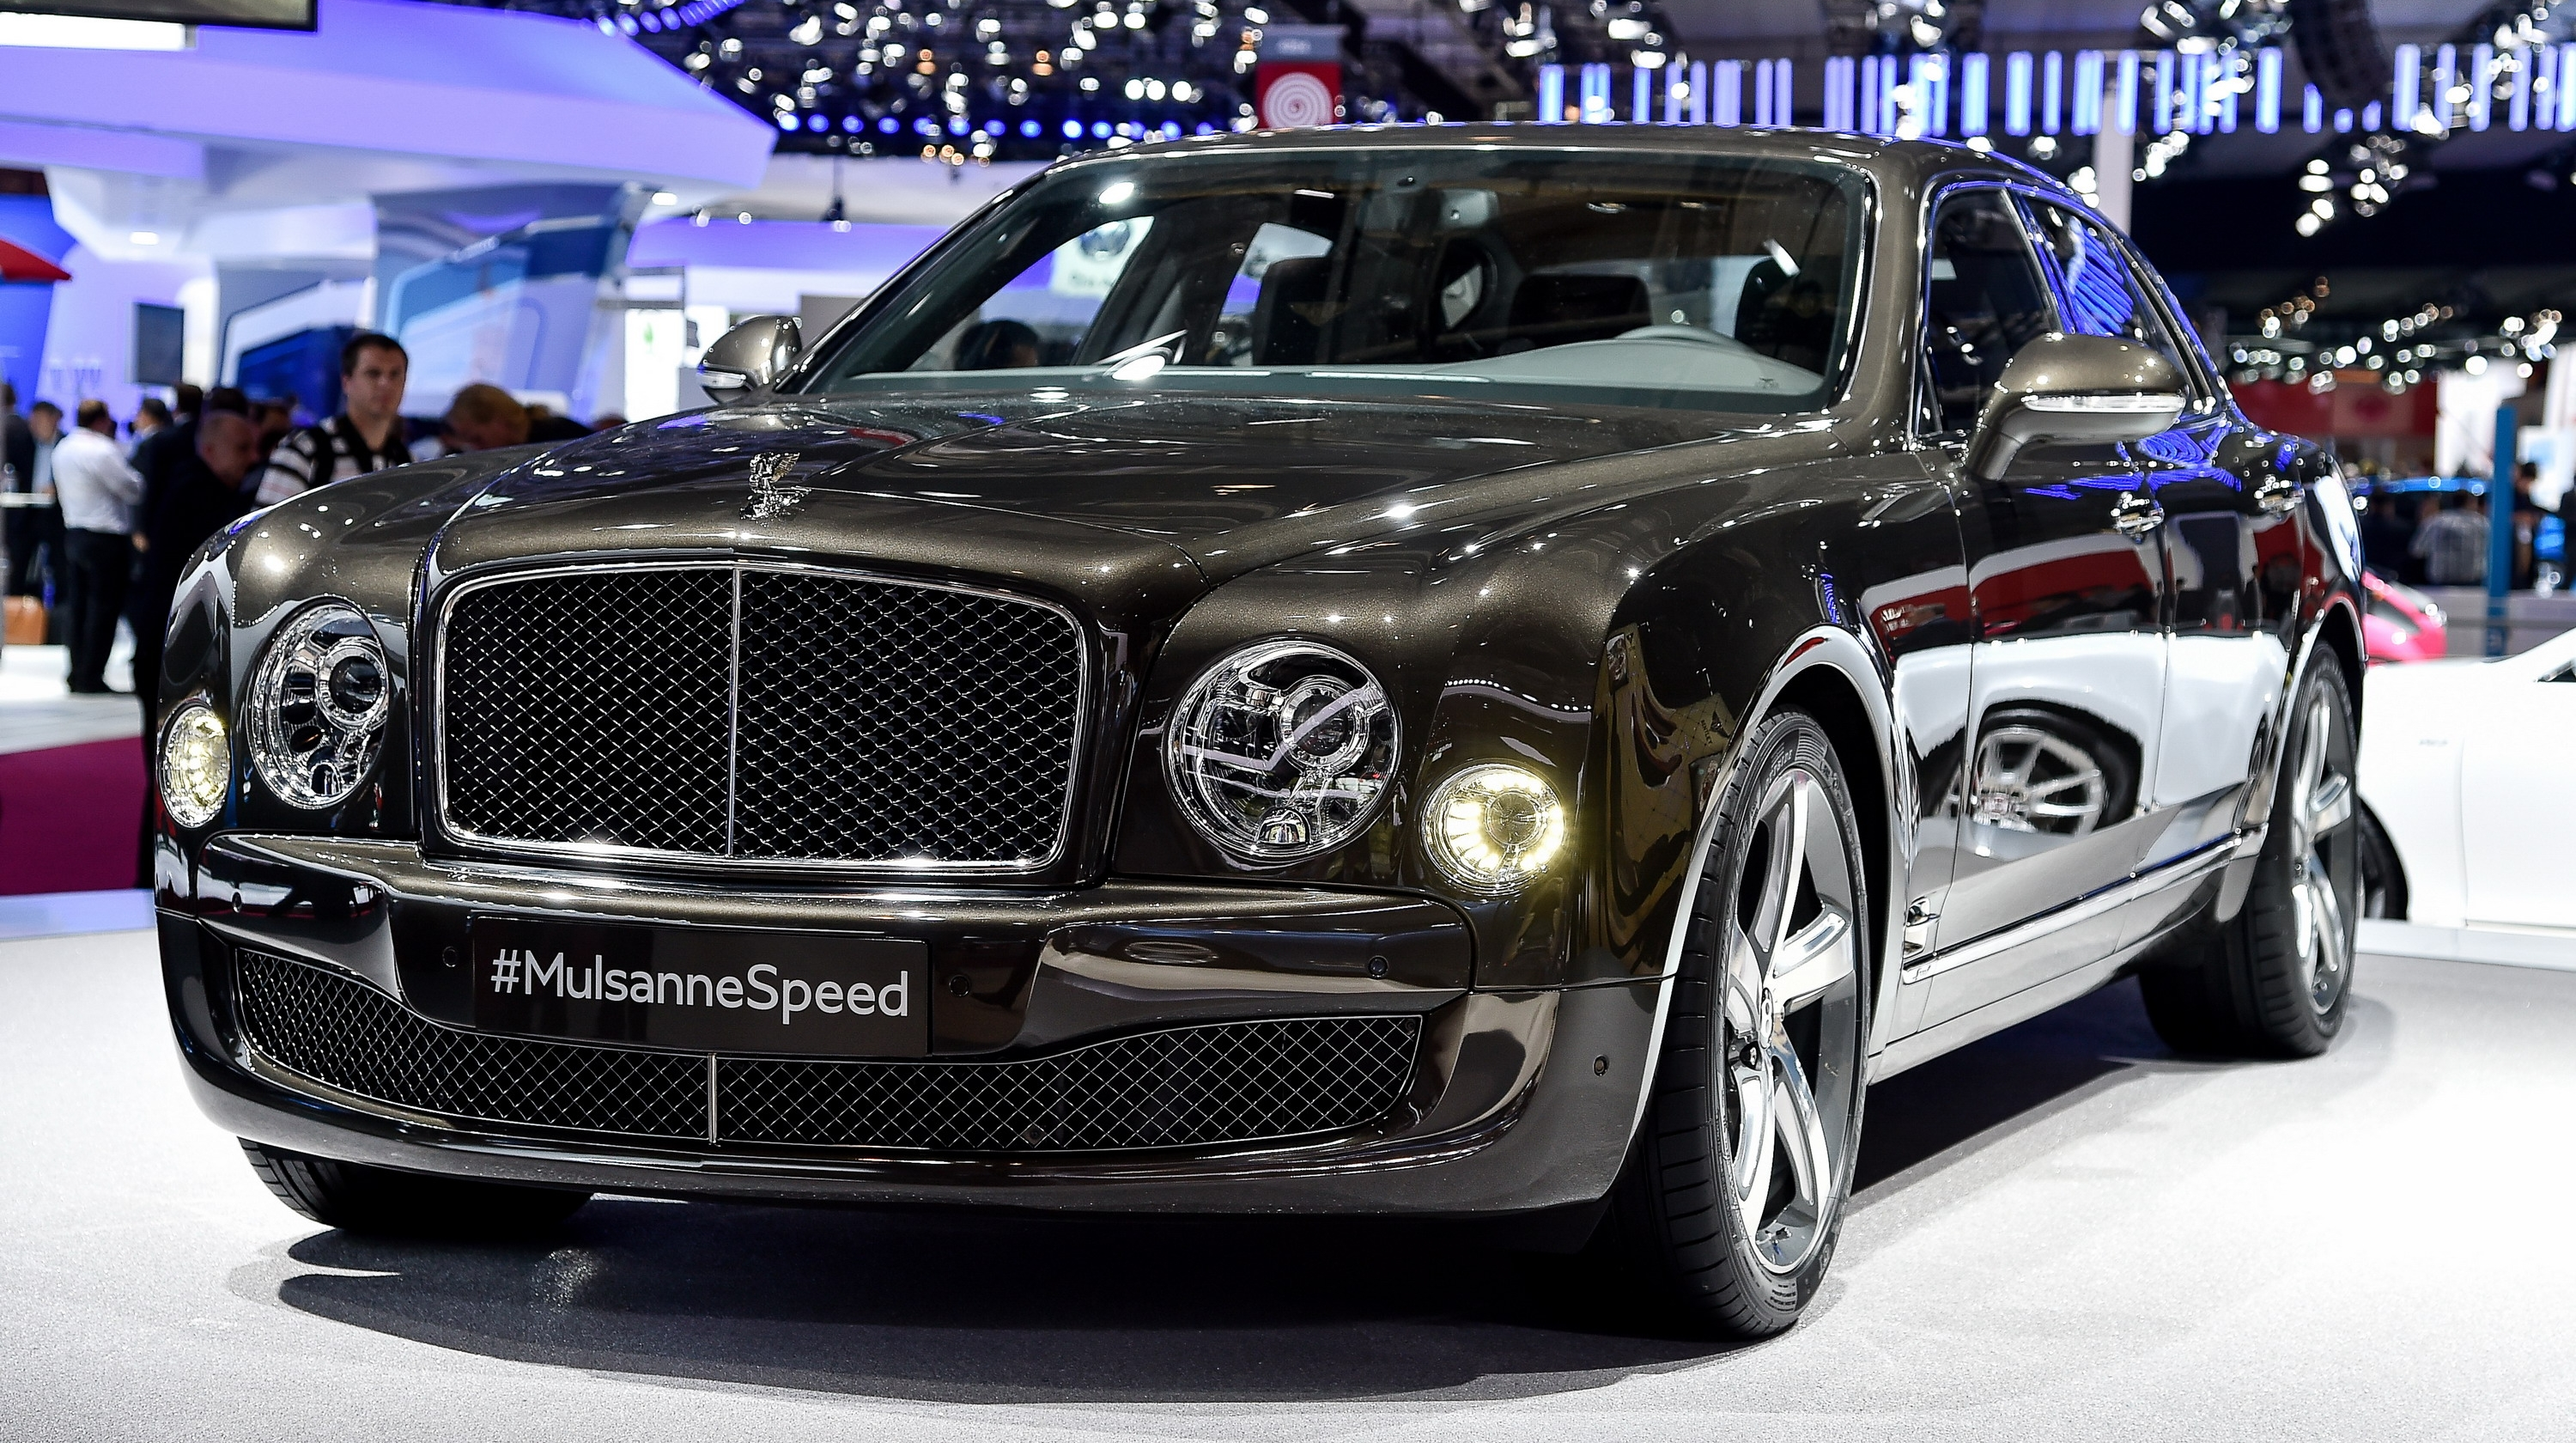 2015 bentley mulsanne speed review gallery top speed the modern bentley mulsanne came to be in 2010 when the british luxury firm introduced it as a replacement for the rolls royce era arnage vanachro Image collections